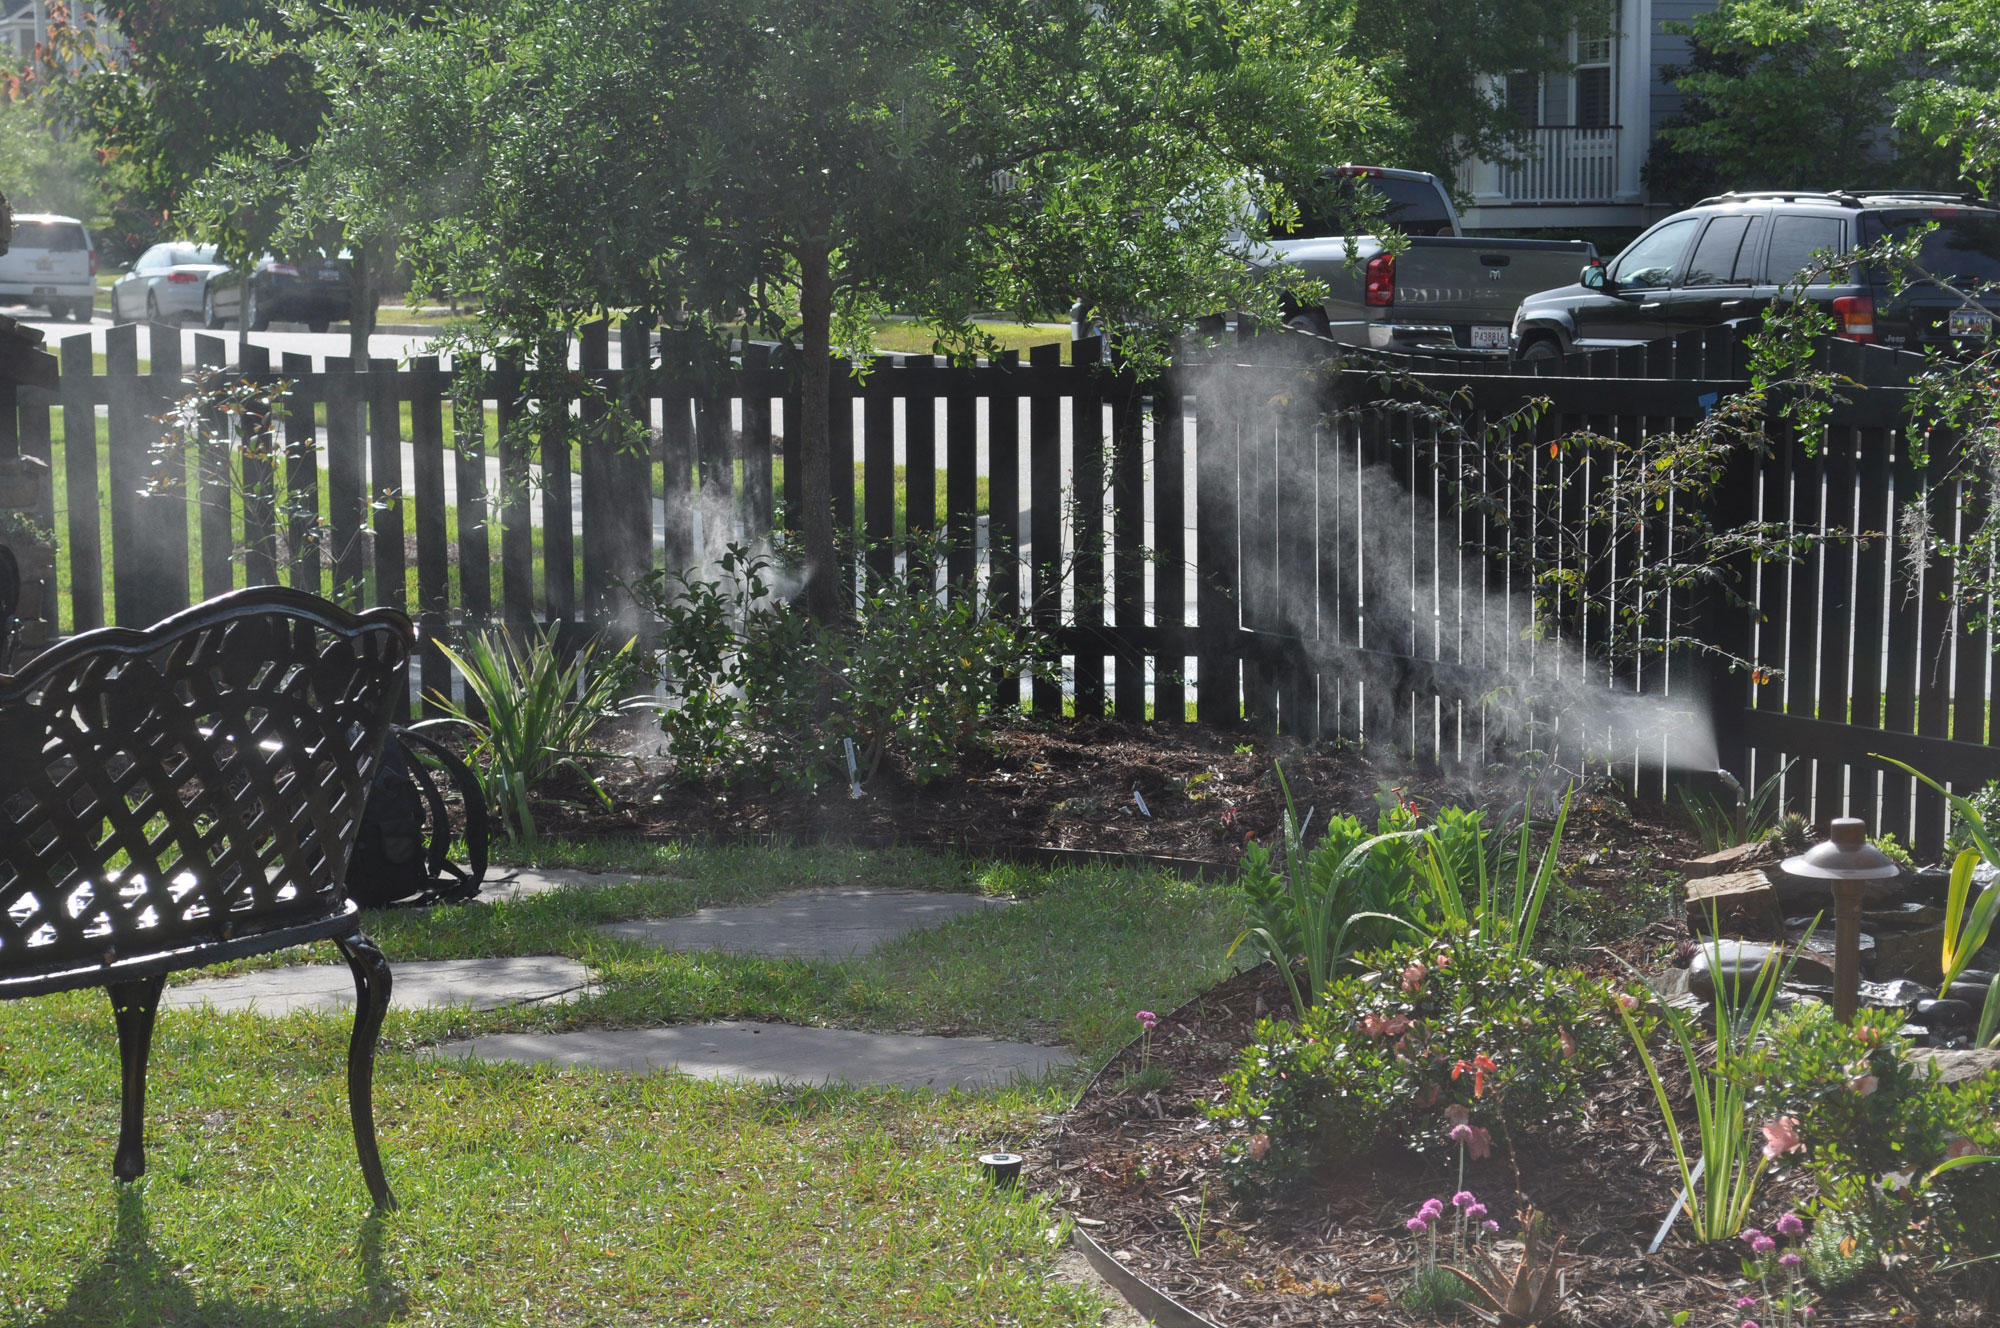 misting systems palmetto mosquito control making outdoors livable